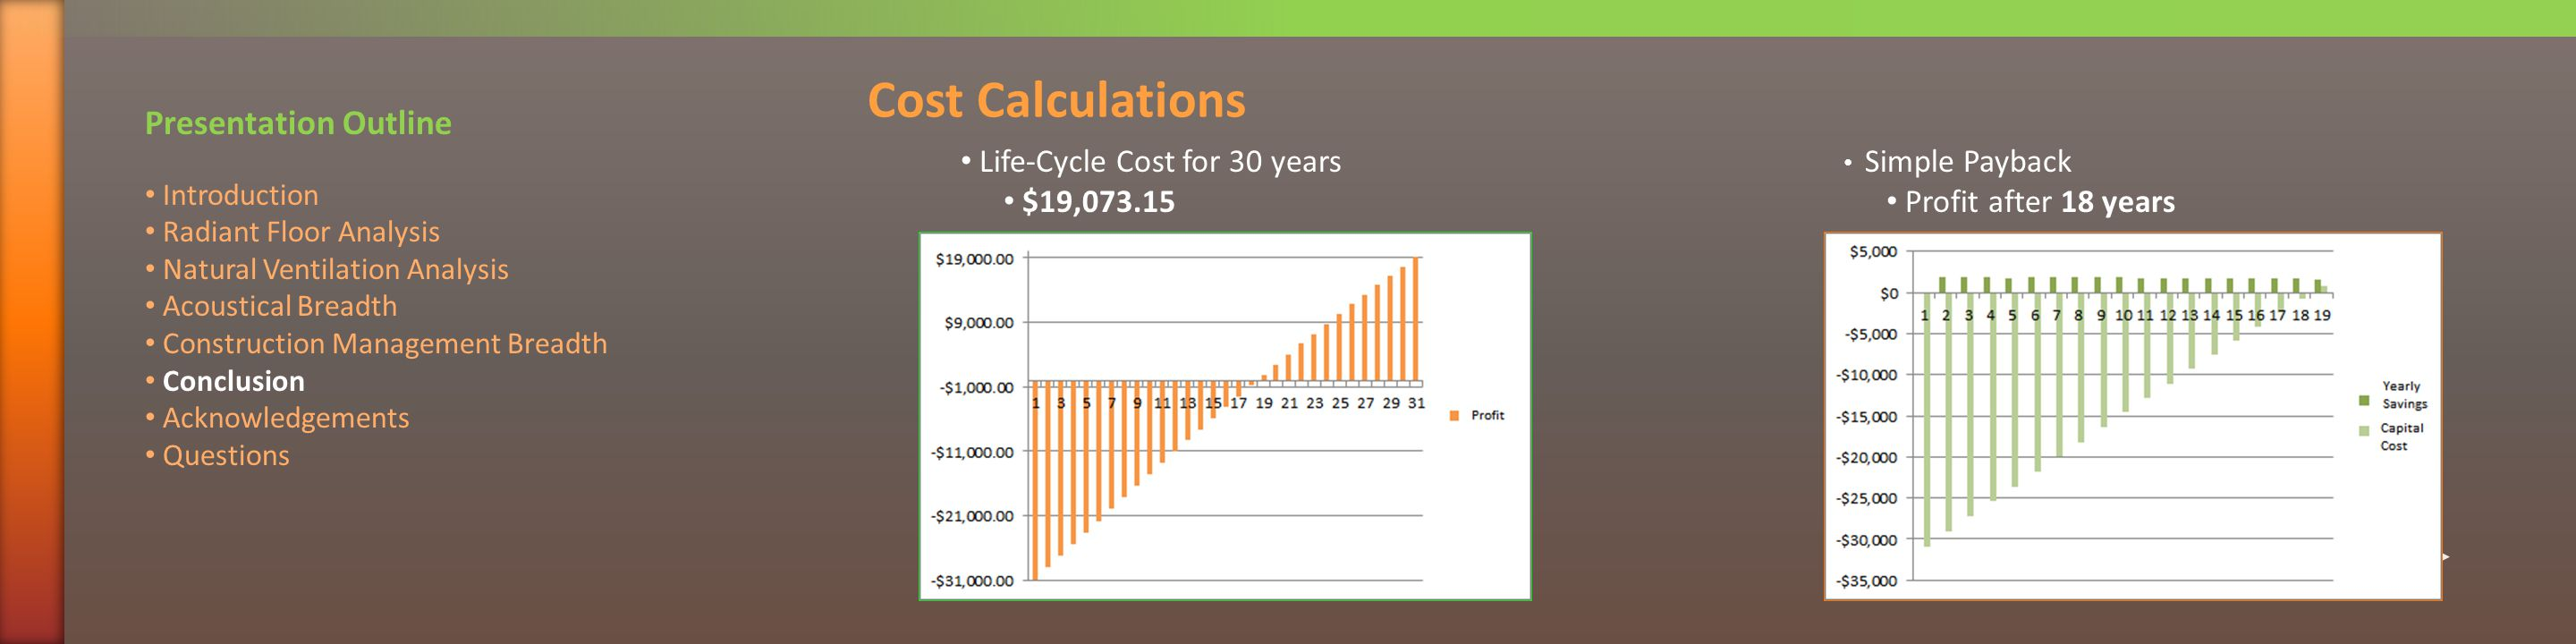 Life-Cycle Cost for 30 years $19,073.15 Cost Calculations Simple Payback Profit after 18 years Presentation Outline Introduction Radiant Floor Analysis Natural Ventilation Analysis Acoustical Breadth Construction Management Breadth Conclusion Acknowledgements Questions